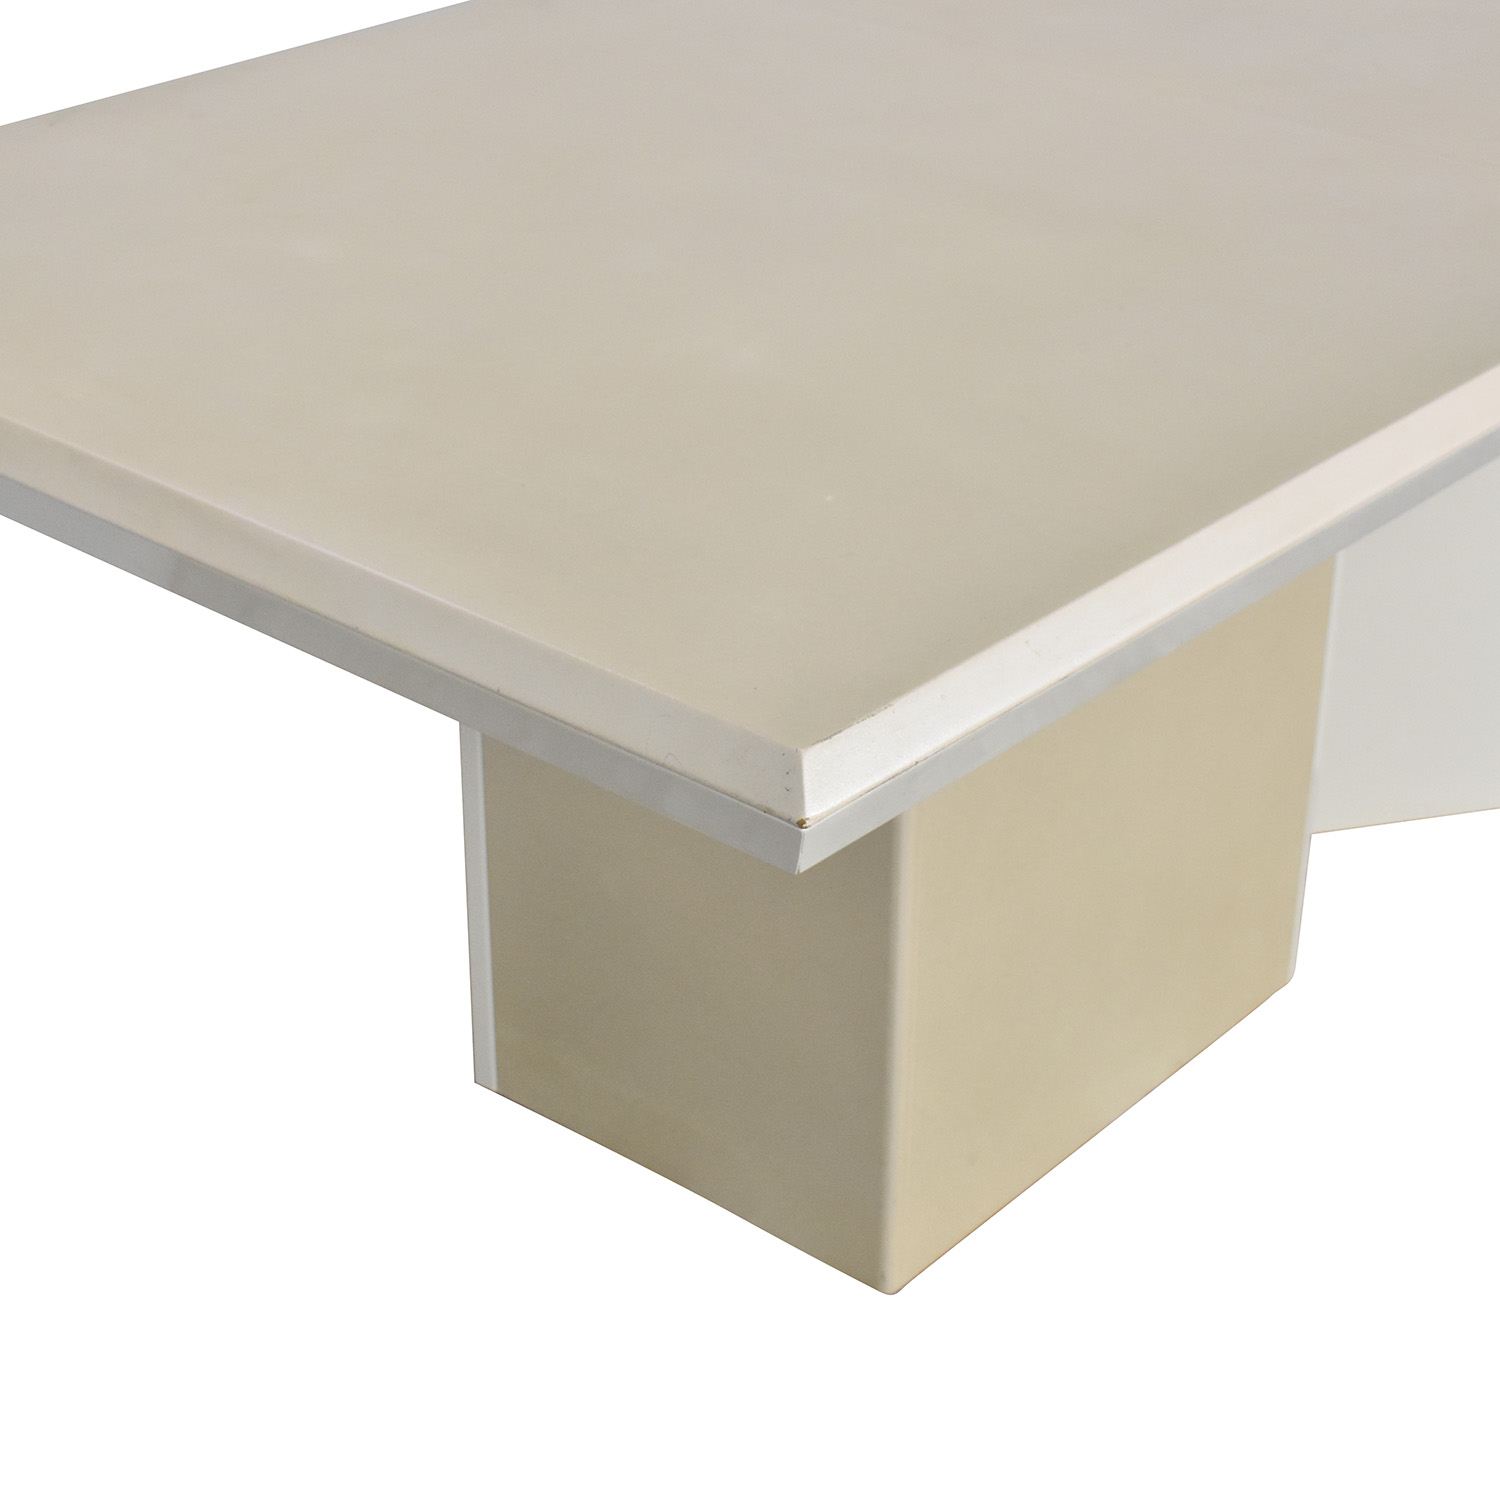 Carrier Furniture Carrier Furniture Extendable Dining Table coupon